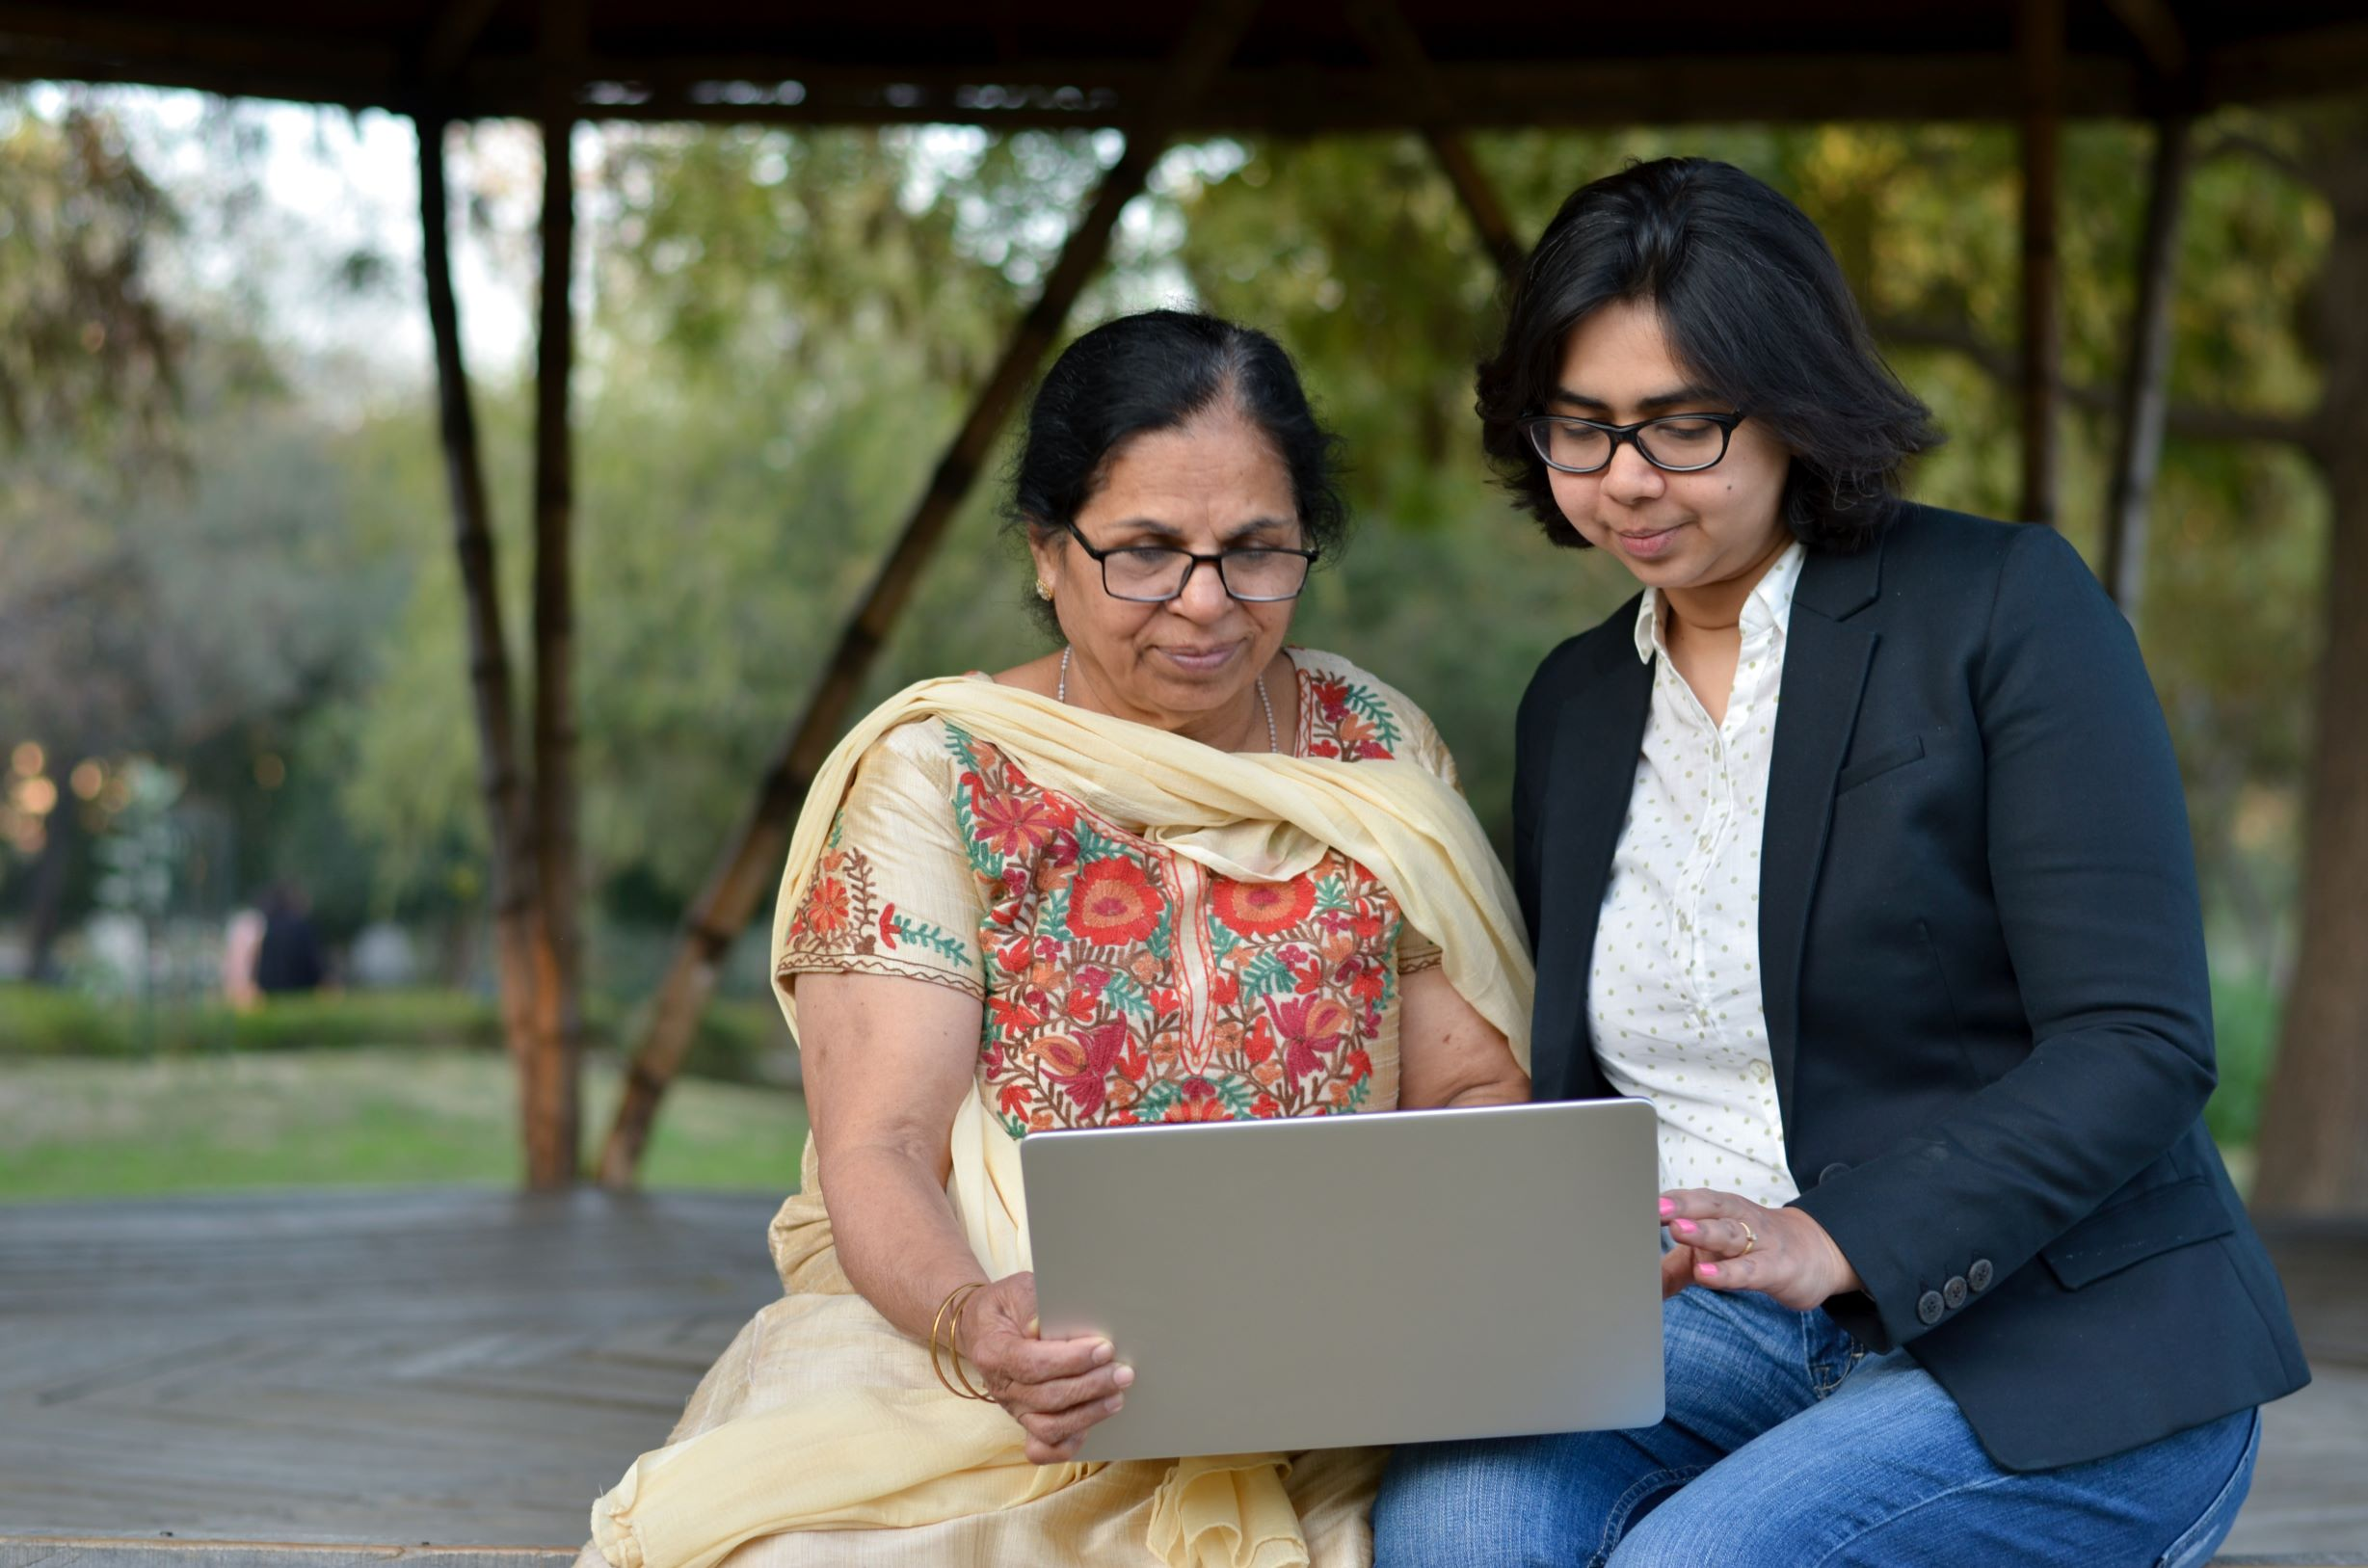 It takes a village: The role of mentorship in supporting India's young women in the workforce 1